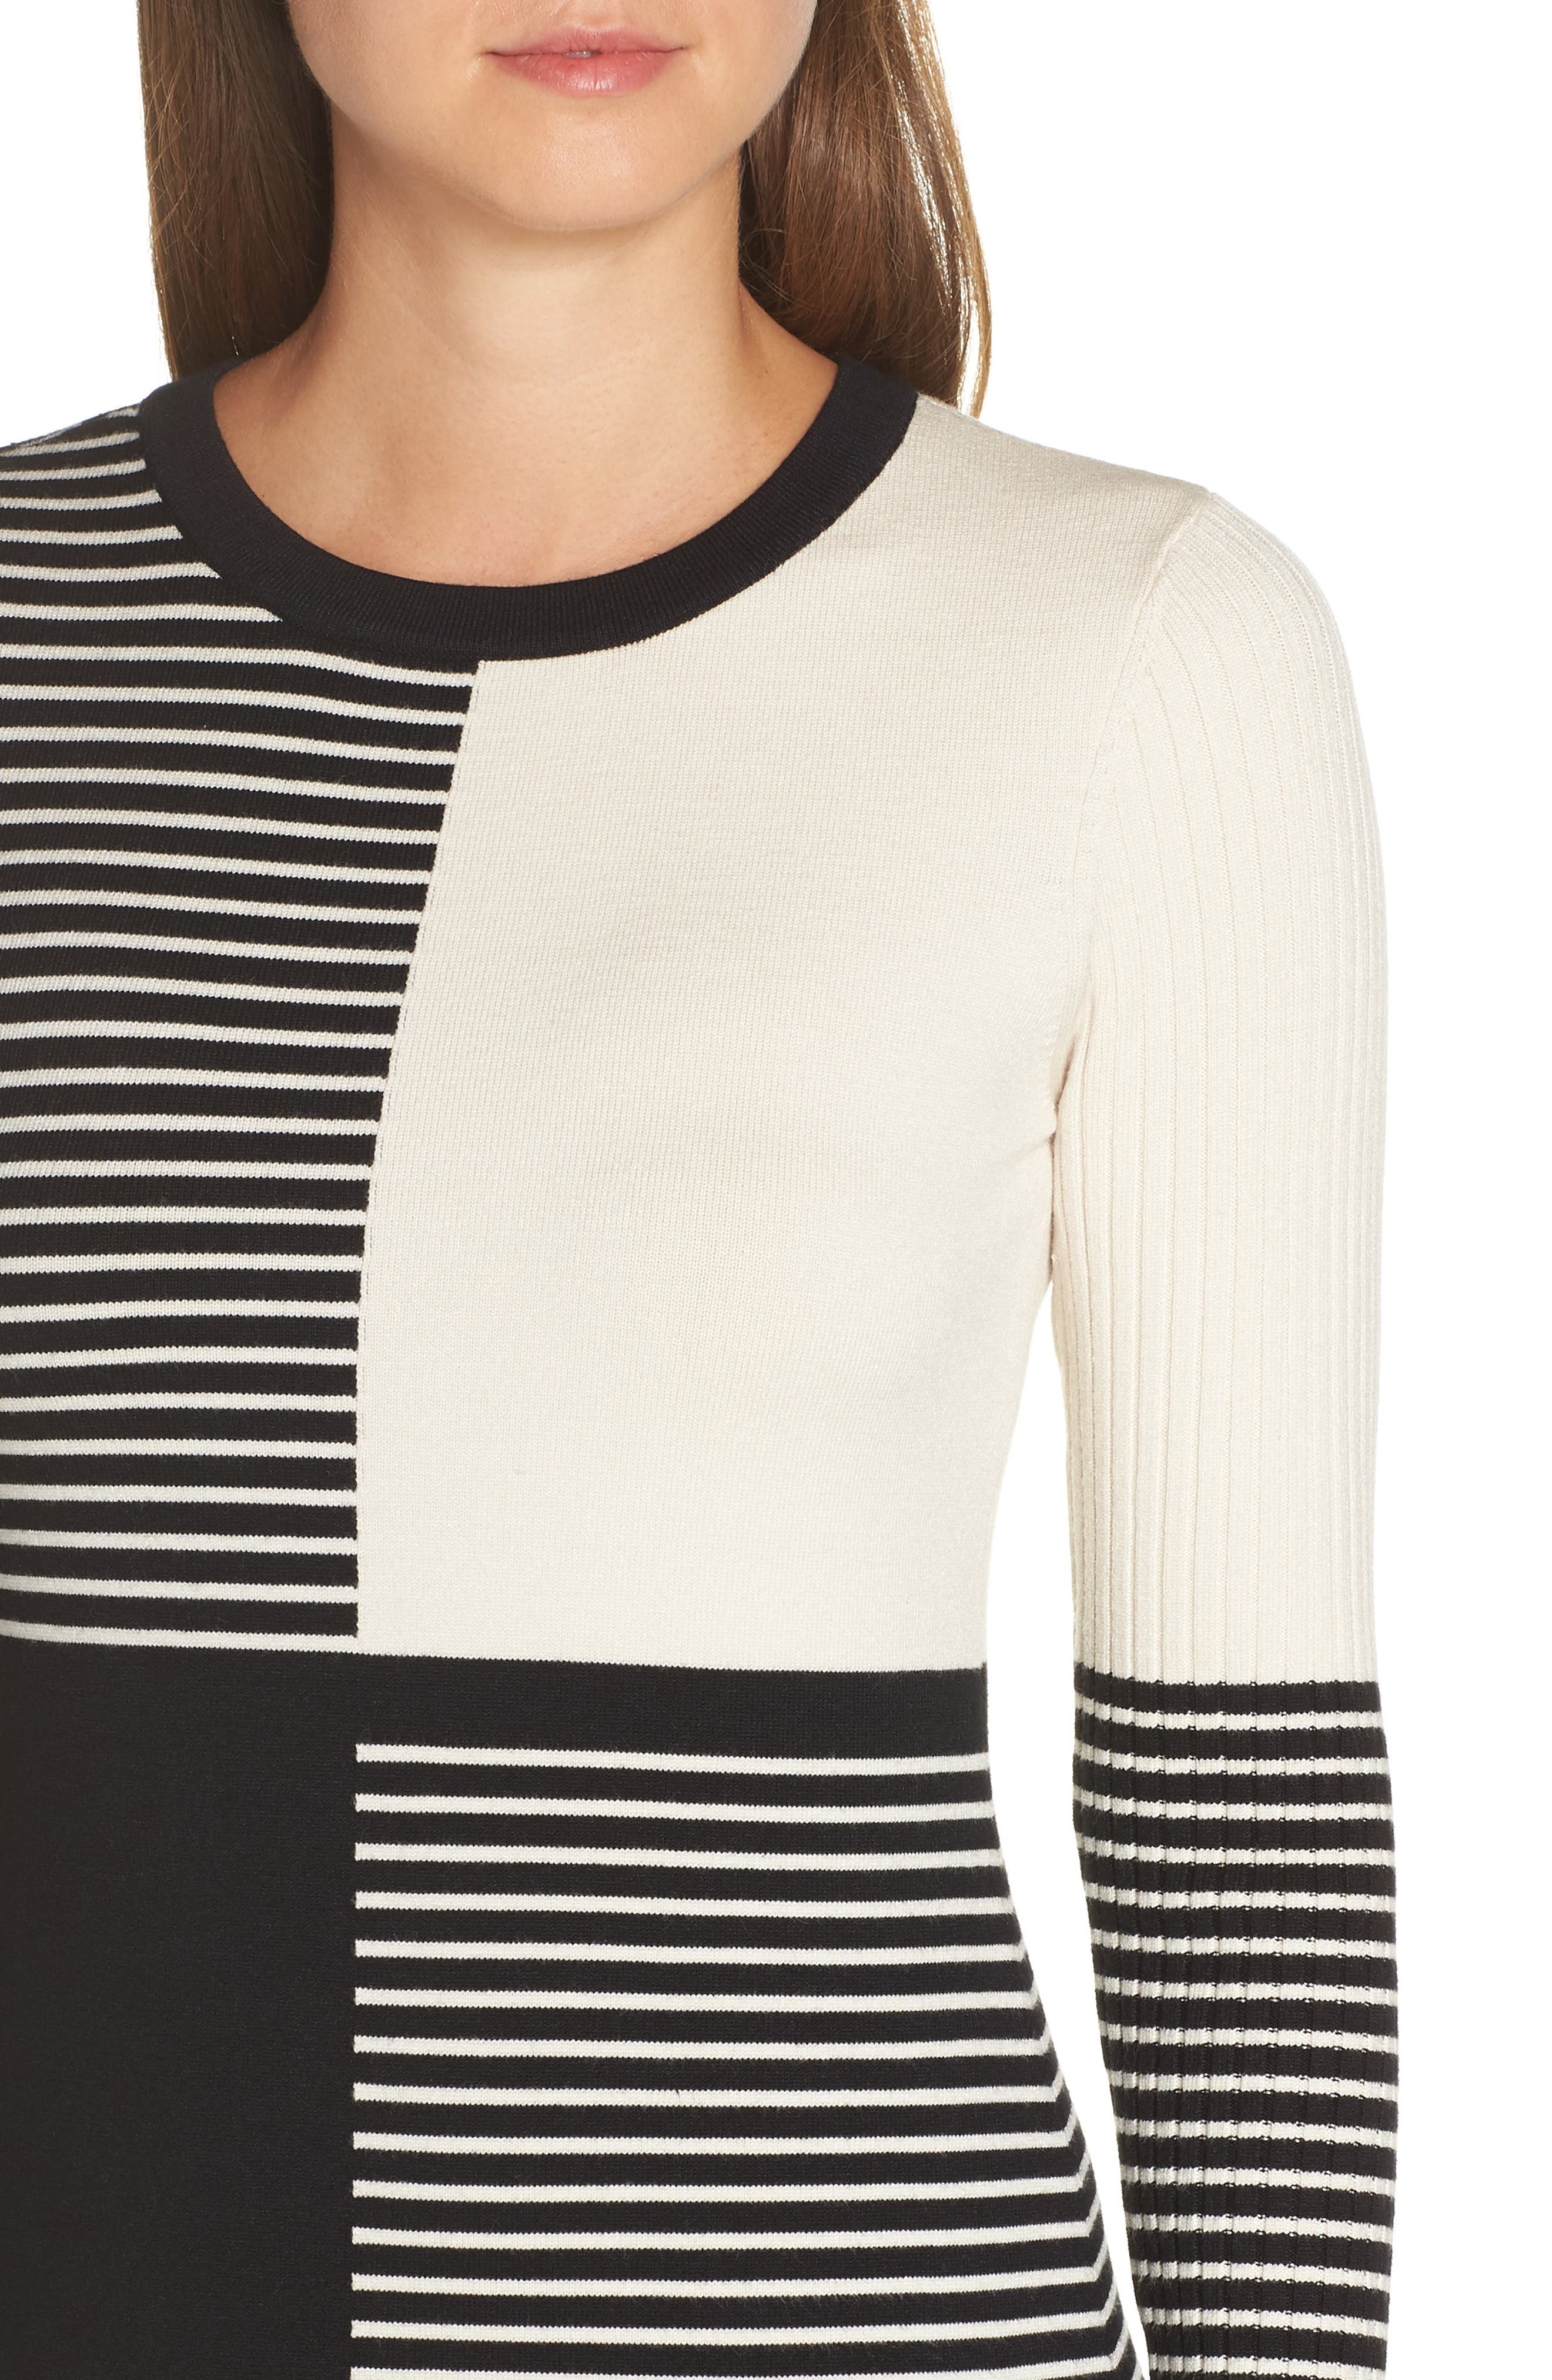 ELIZA J, Placed Stripe Sweater Dress, Alternate thumbnail 5, color, 900